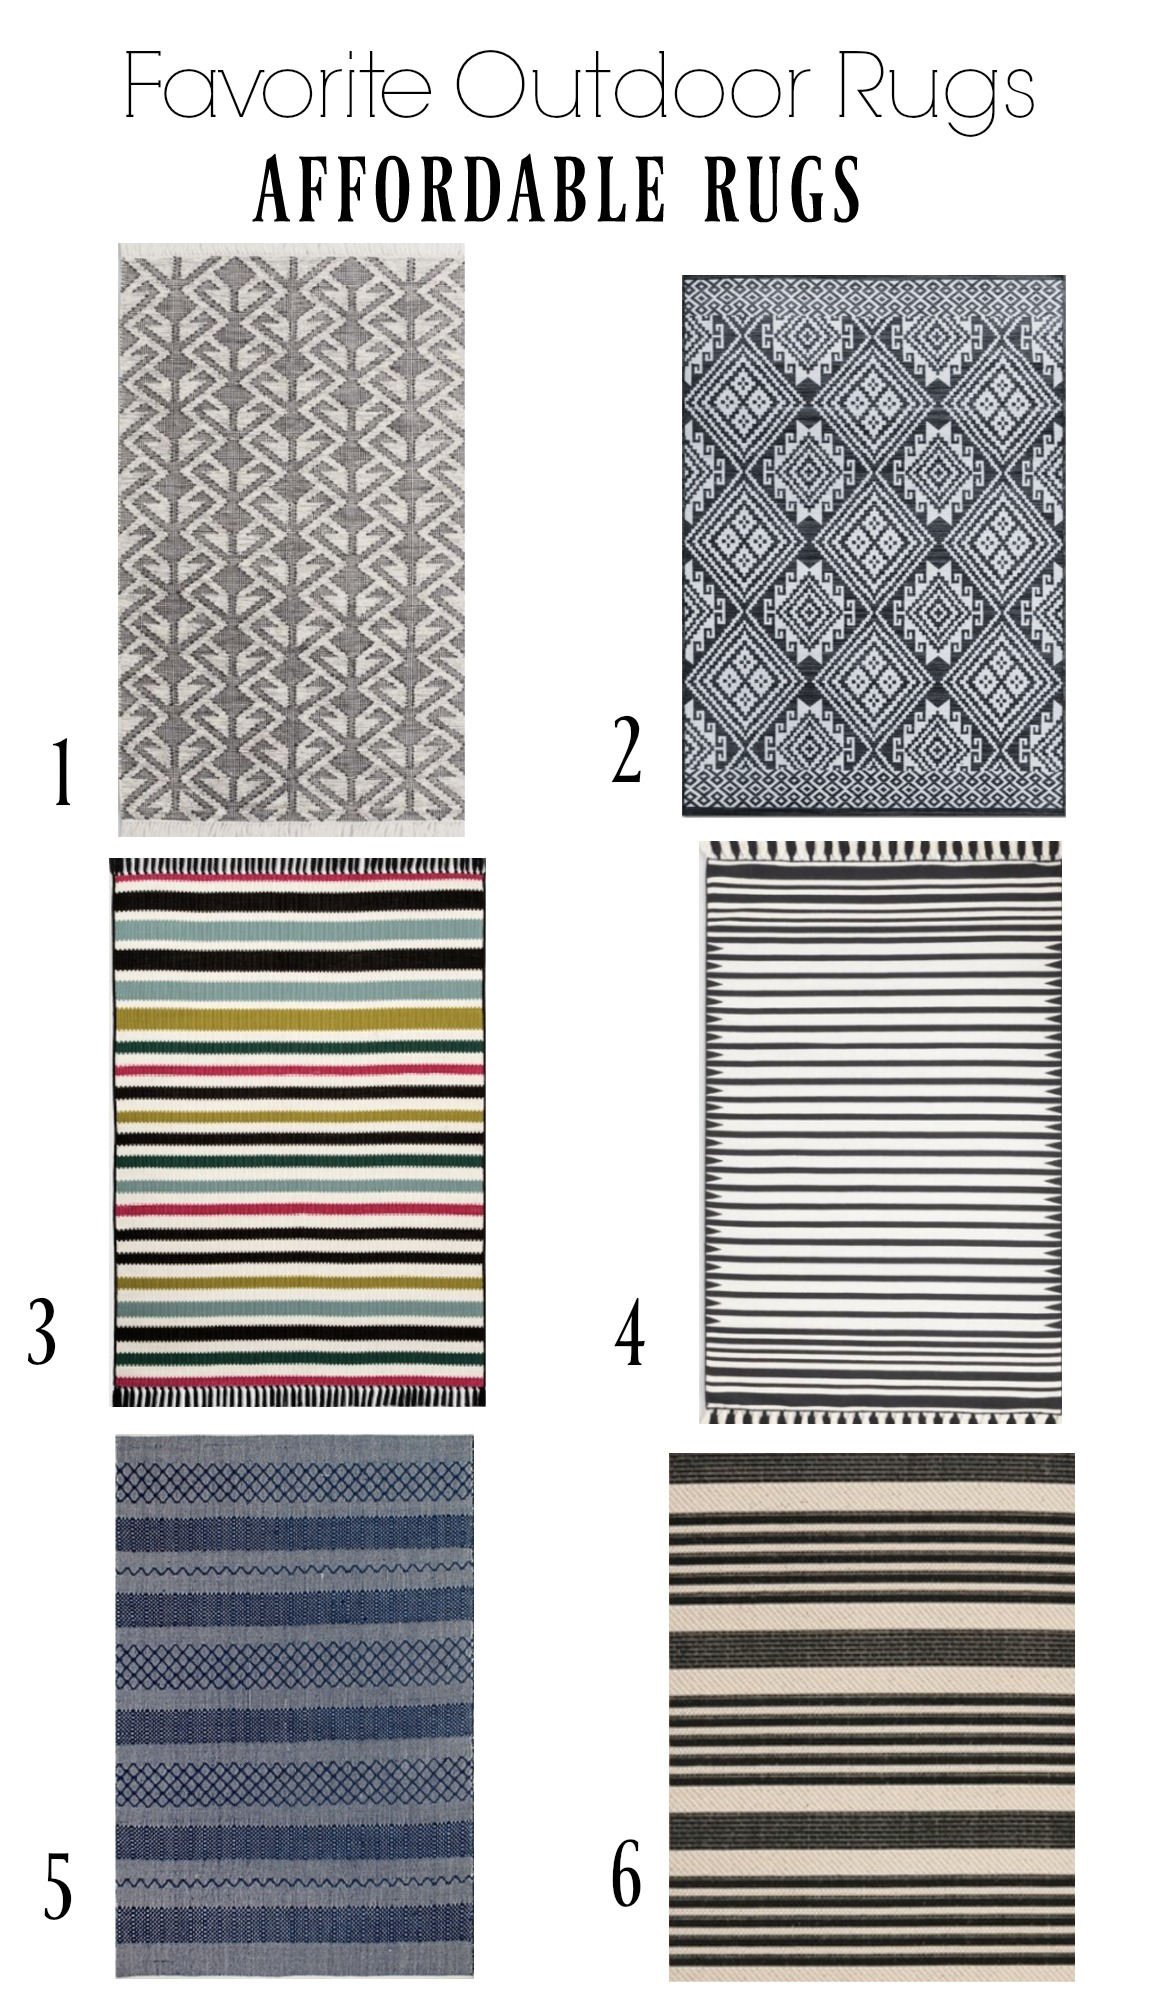 Outdoor Rugs- Affordable Favorites